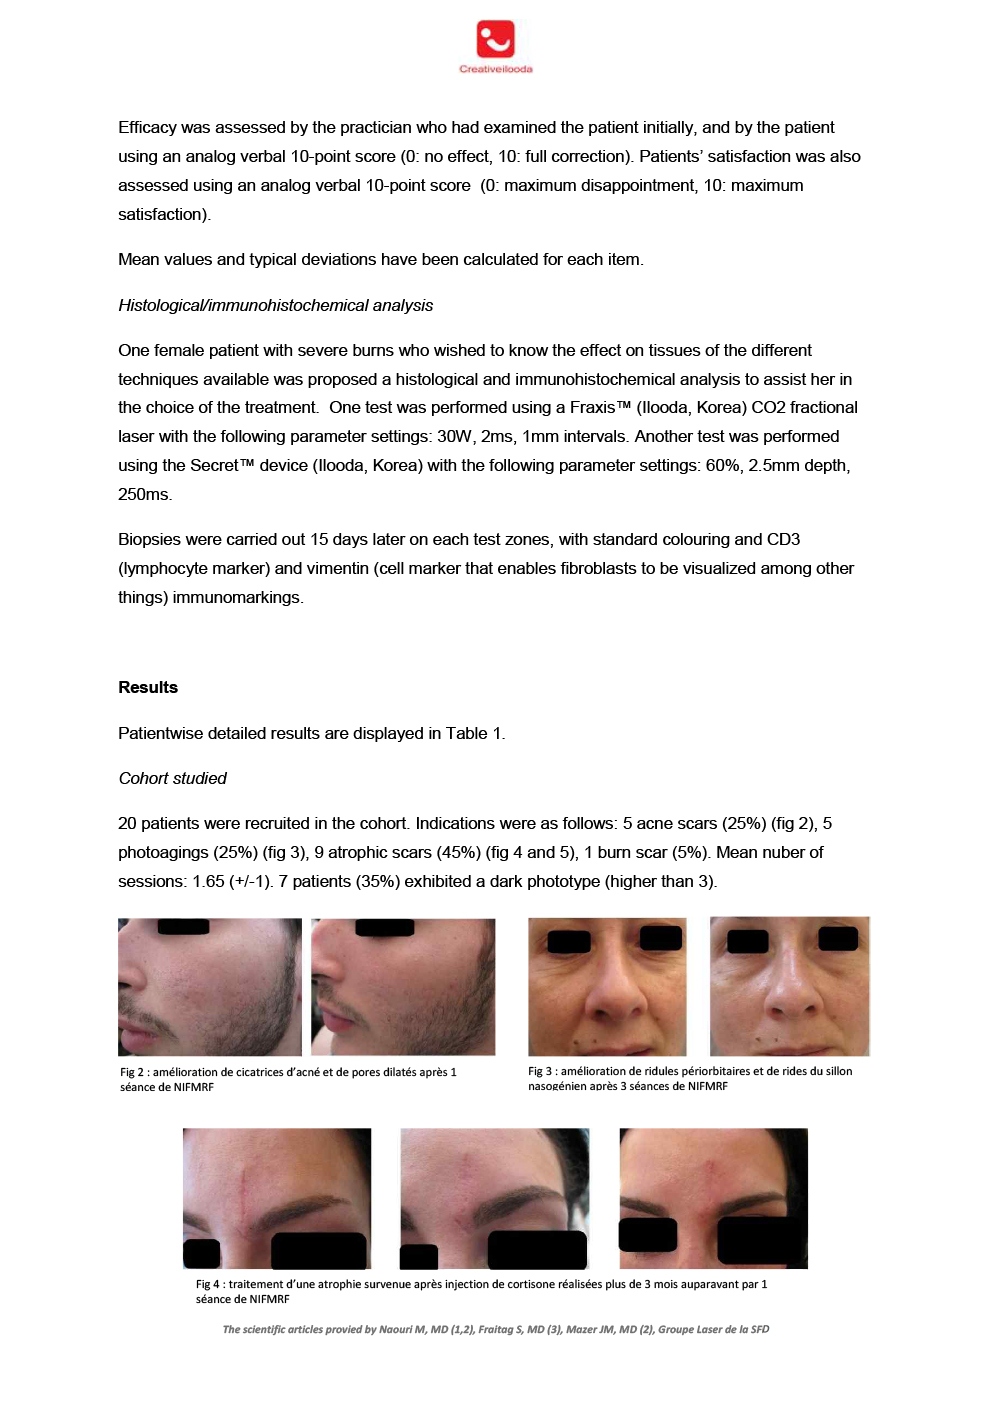 r2 Non insulated microneedle radiofrequency for the treatment of scars and photoageing by Dr. Naouri 5